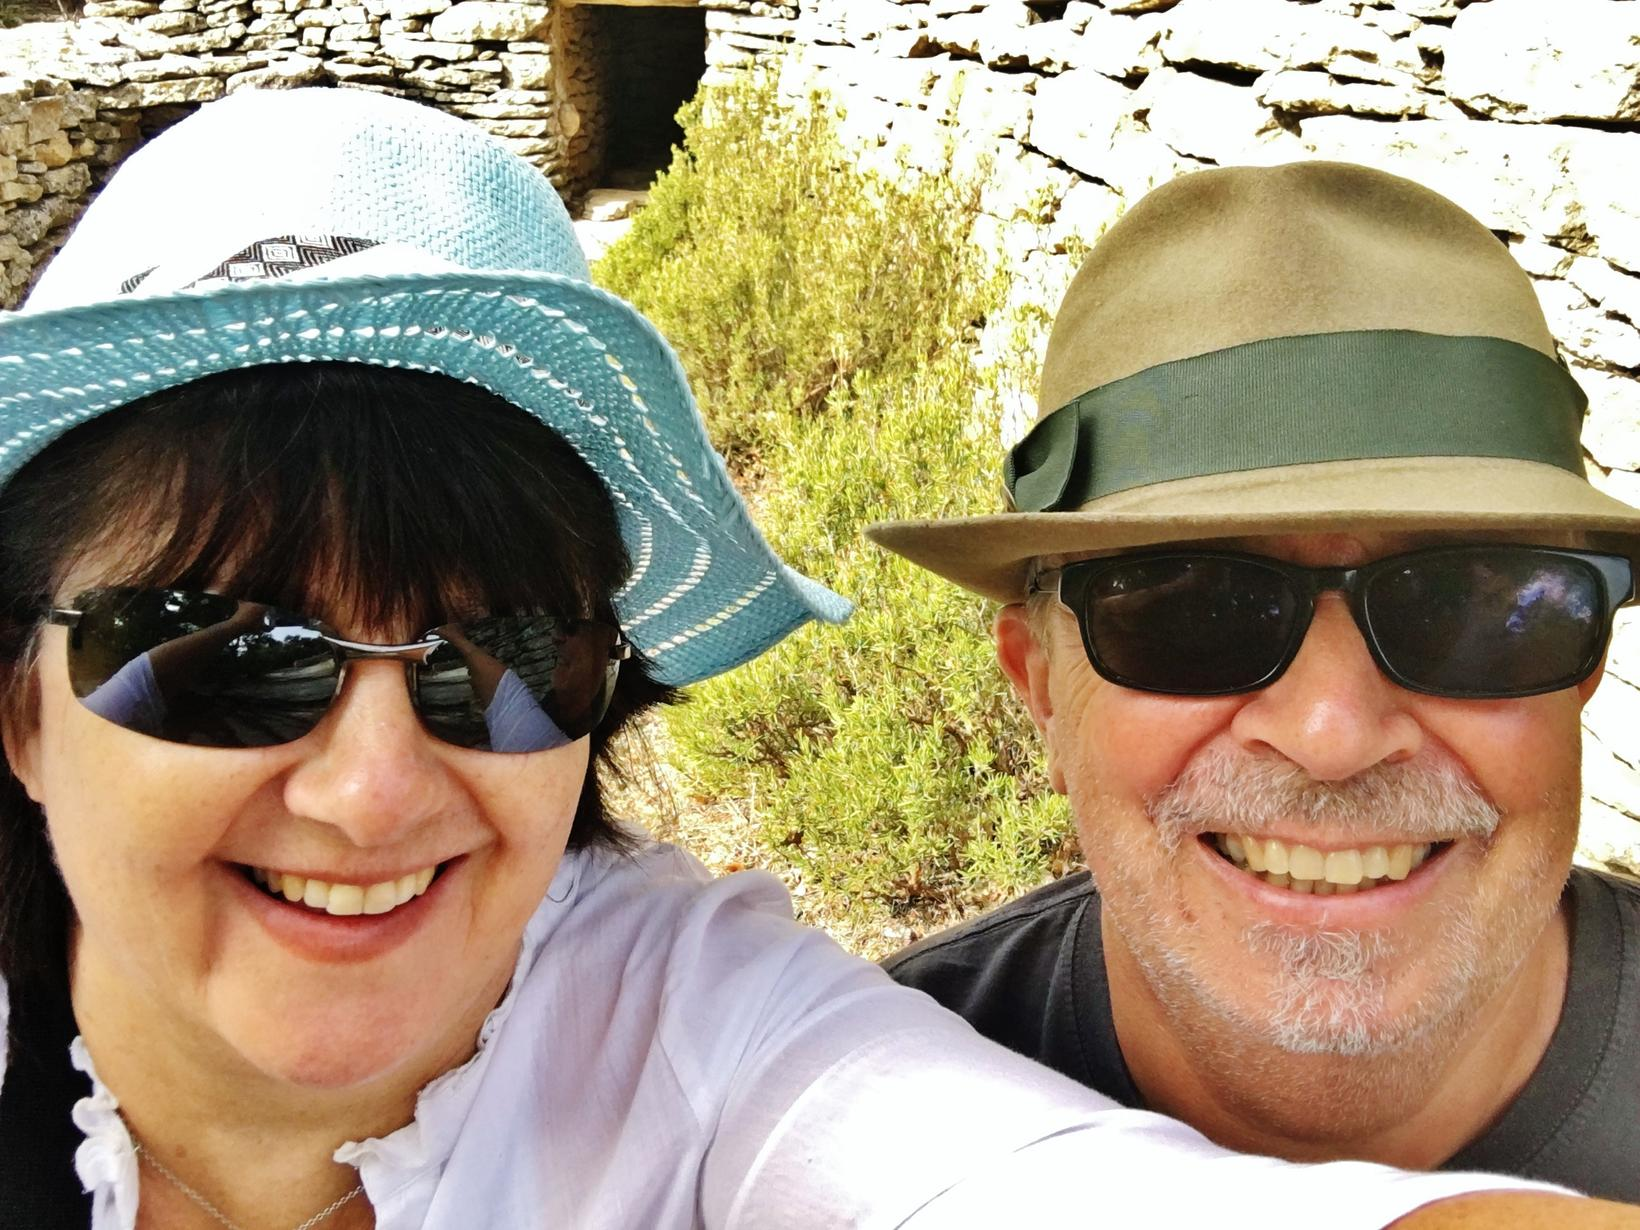 Coleen & Barry from Caterham, United Kingdom